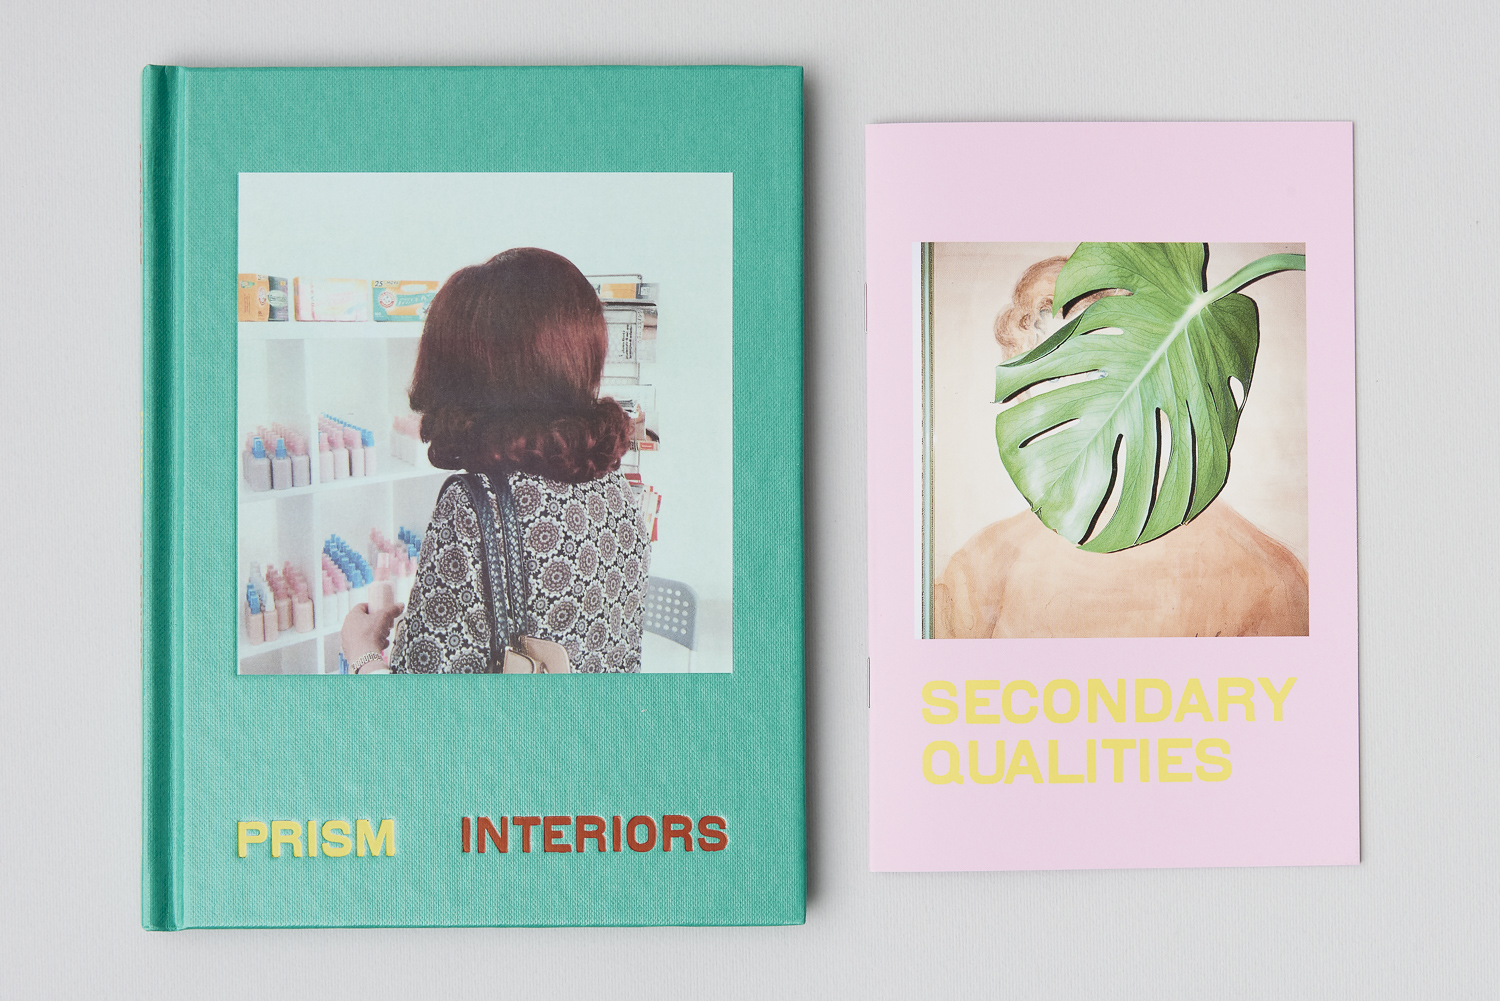 Cover of PRISM INTERIORS plus the pink b-side insert.